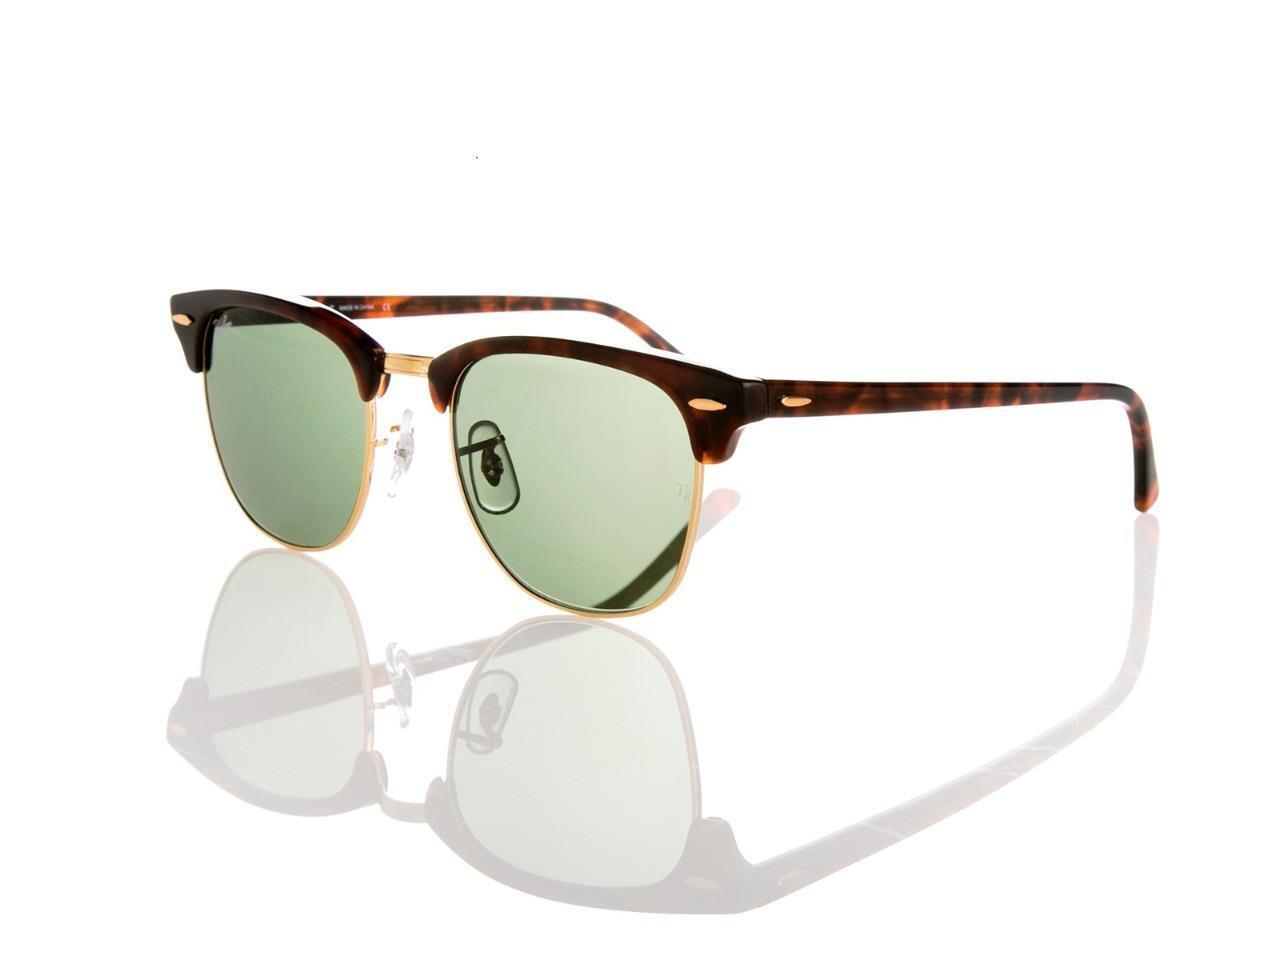 73a2f6bbfc3 Details about New   Authentic Ray-Ban Sunglasses RB 3016 W0366 51mm  Tortoise   Grey Green G15